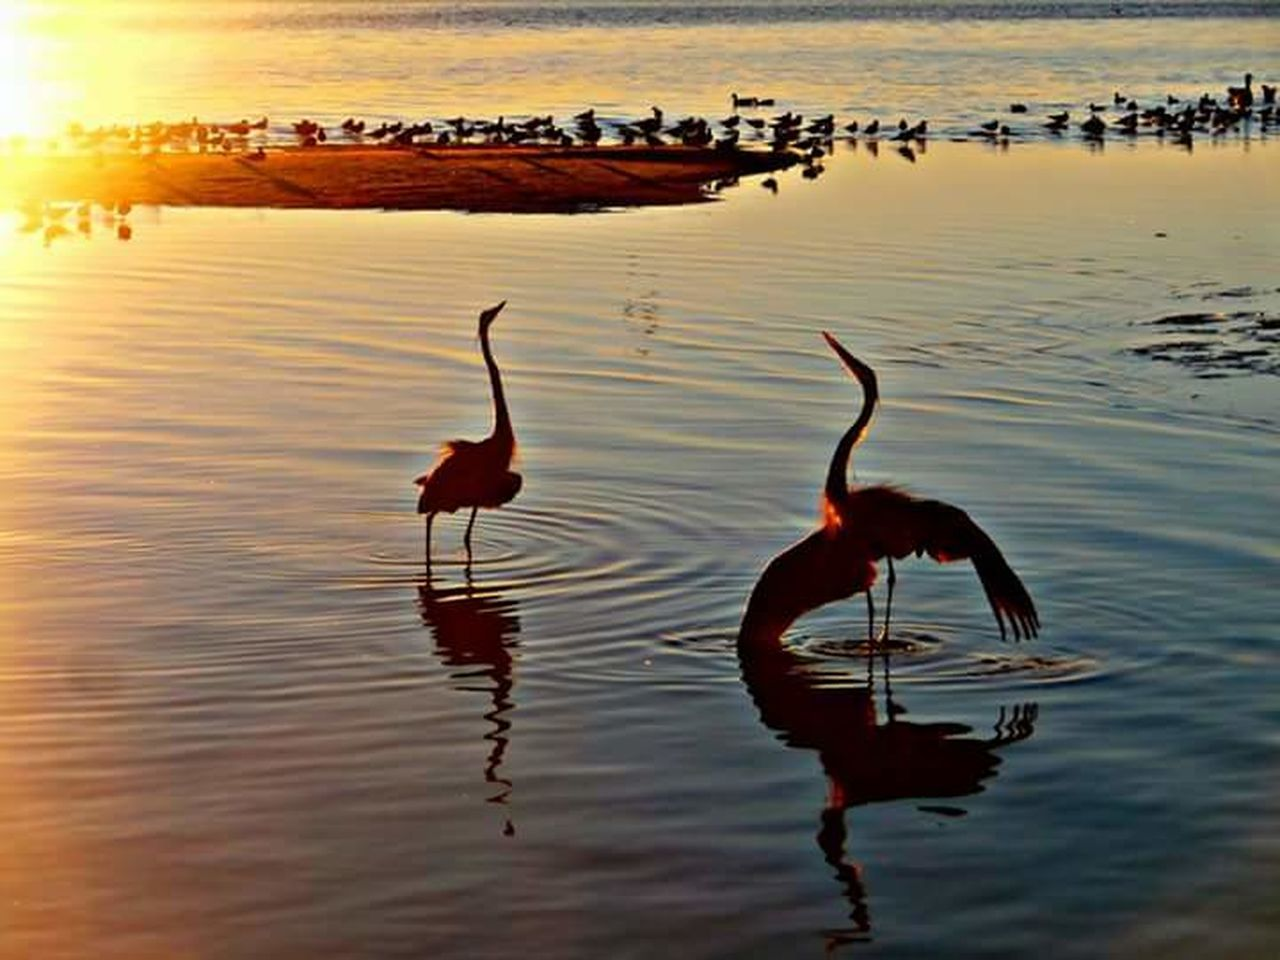 reflection, water, lake, animals in the wild, sunset, bird, animal themes, no people, waterfront, outdoors, nature, animal wildlife, beauty in nature, flamingo, day, swimming